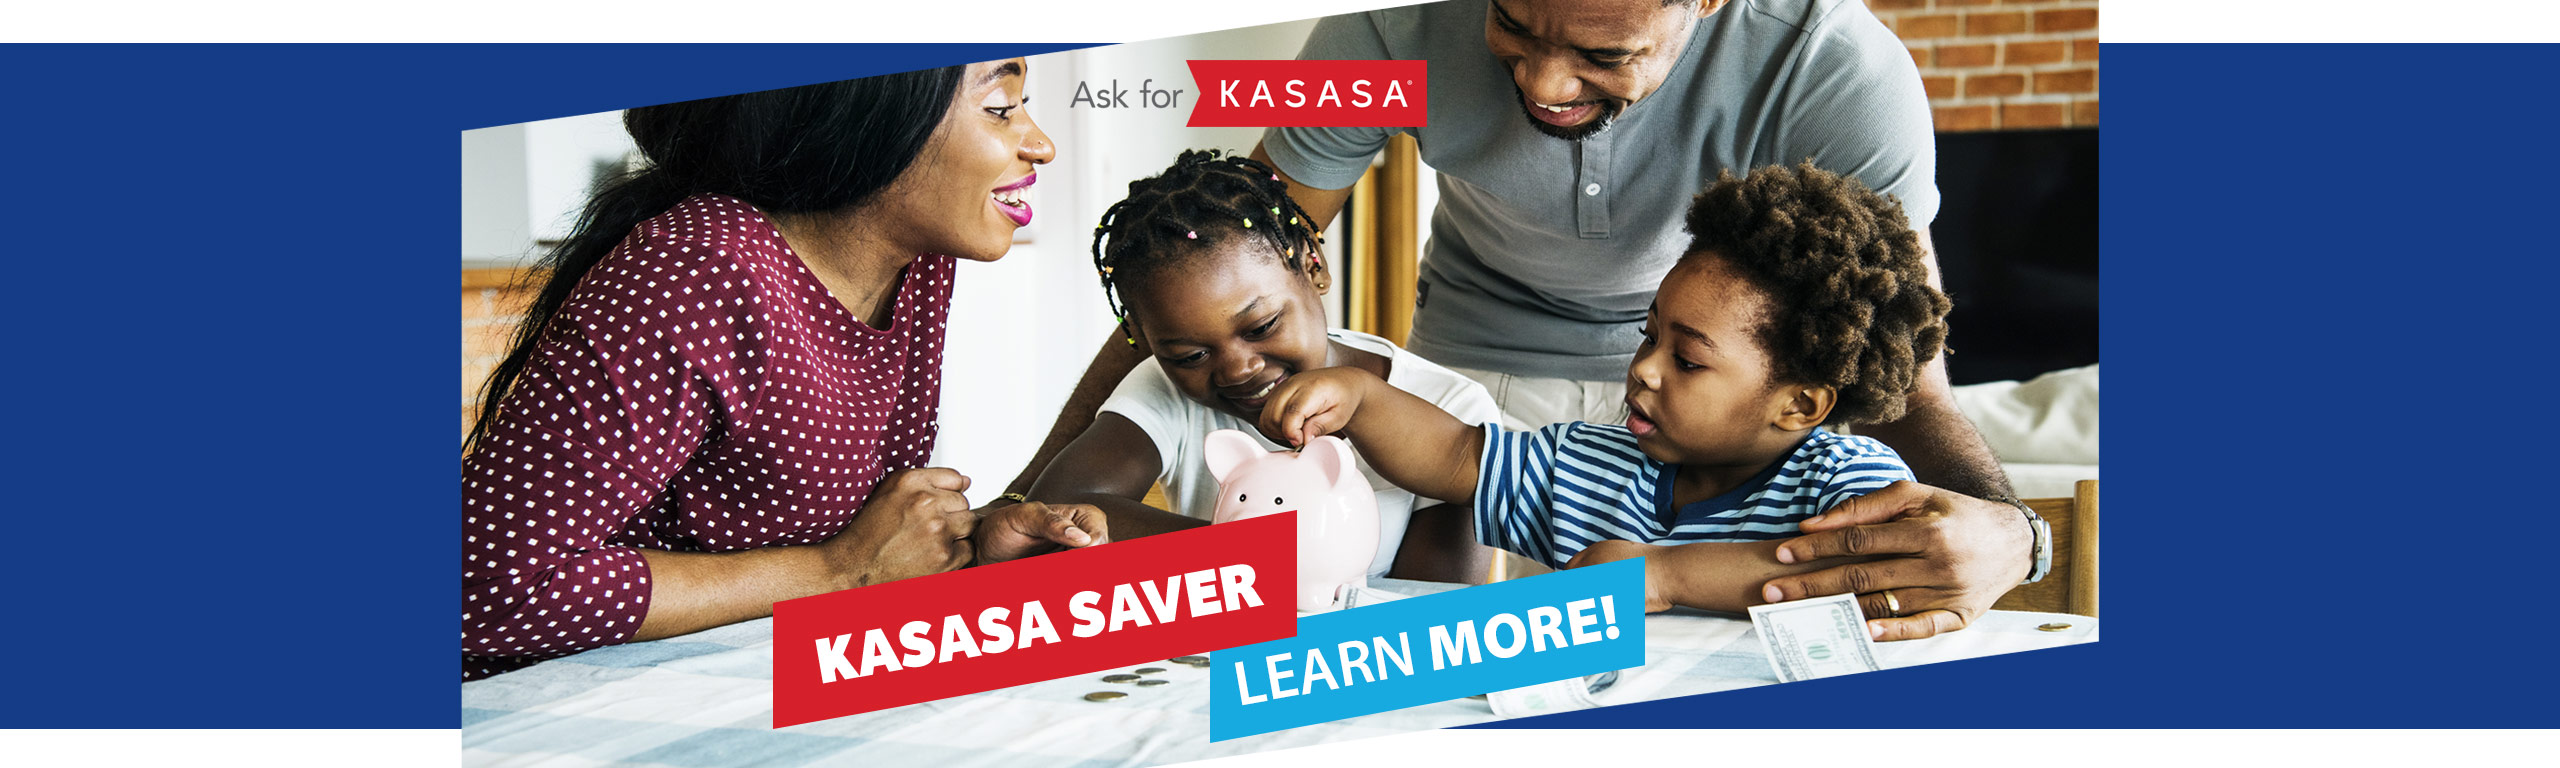 Kasasa Saver - Lean More!